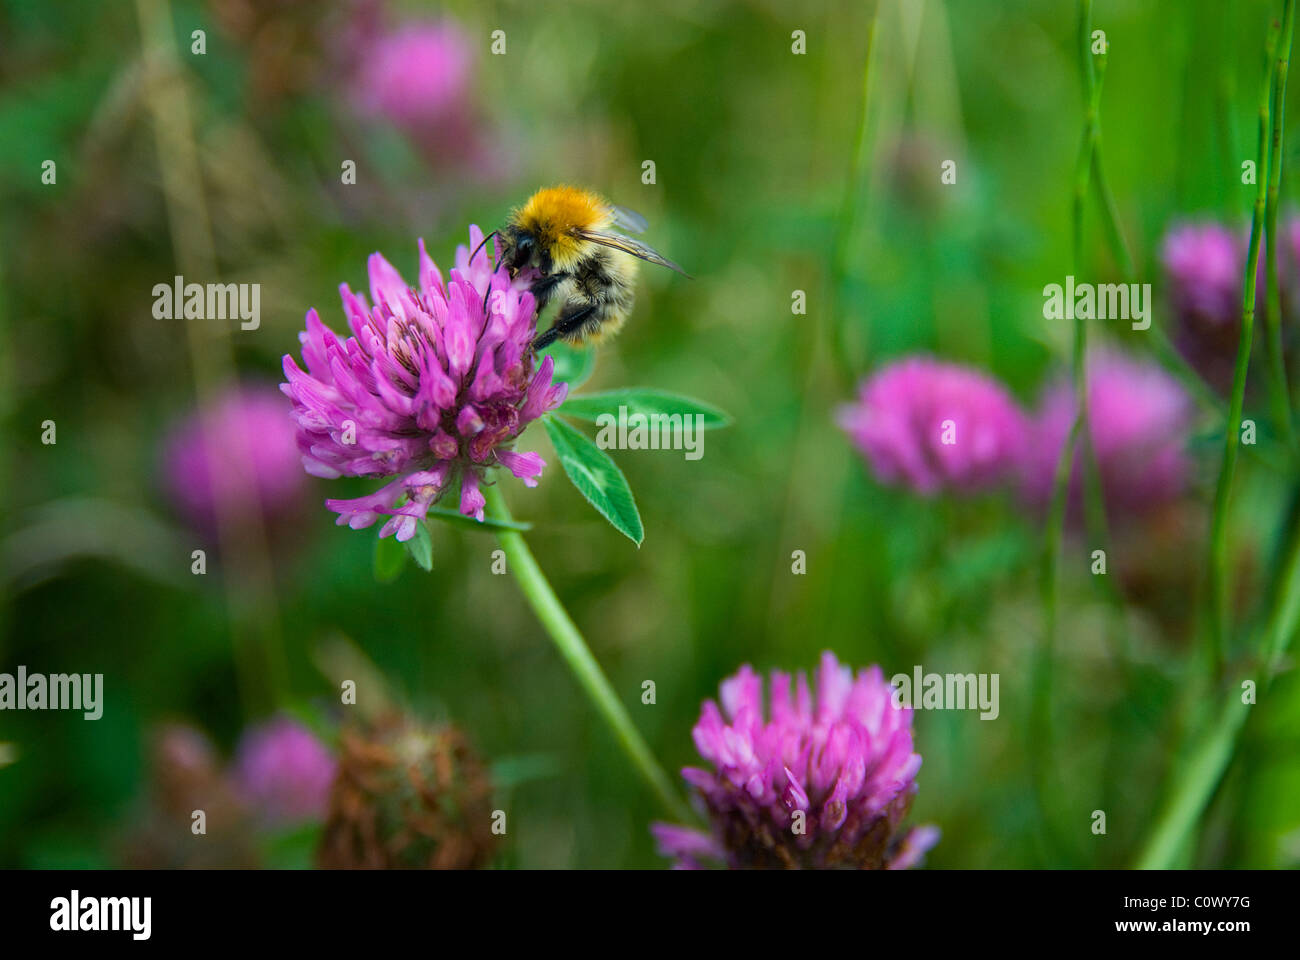 Bumblebee on clover flower - Stock Image